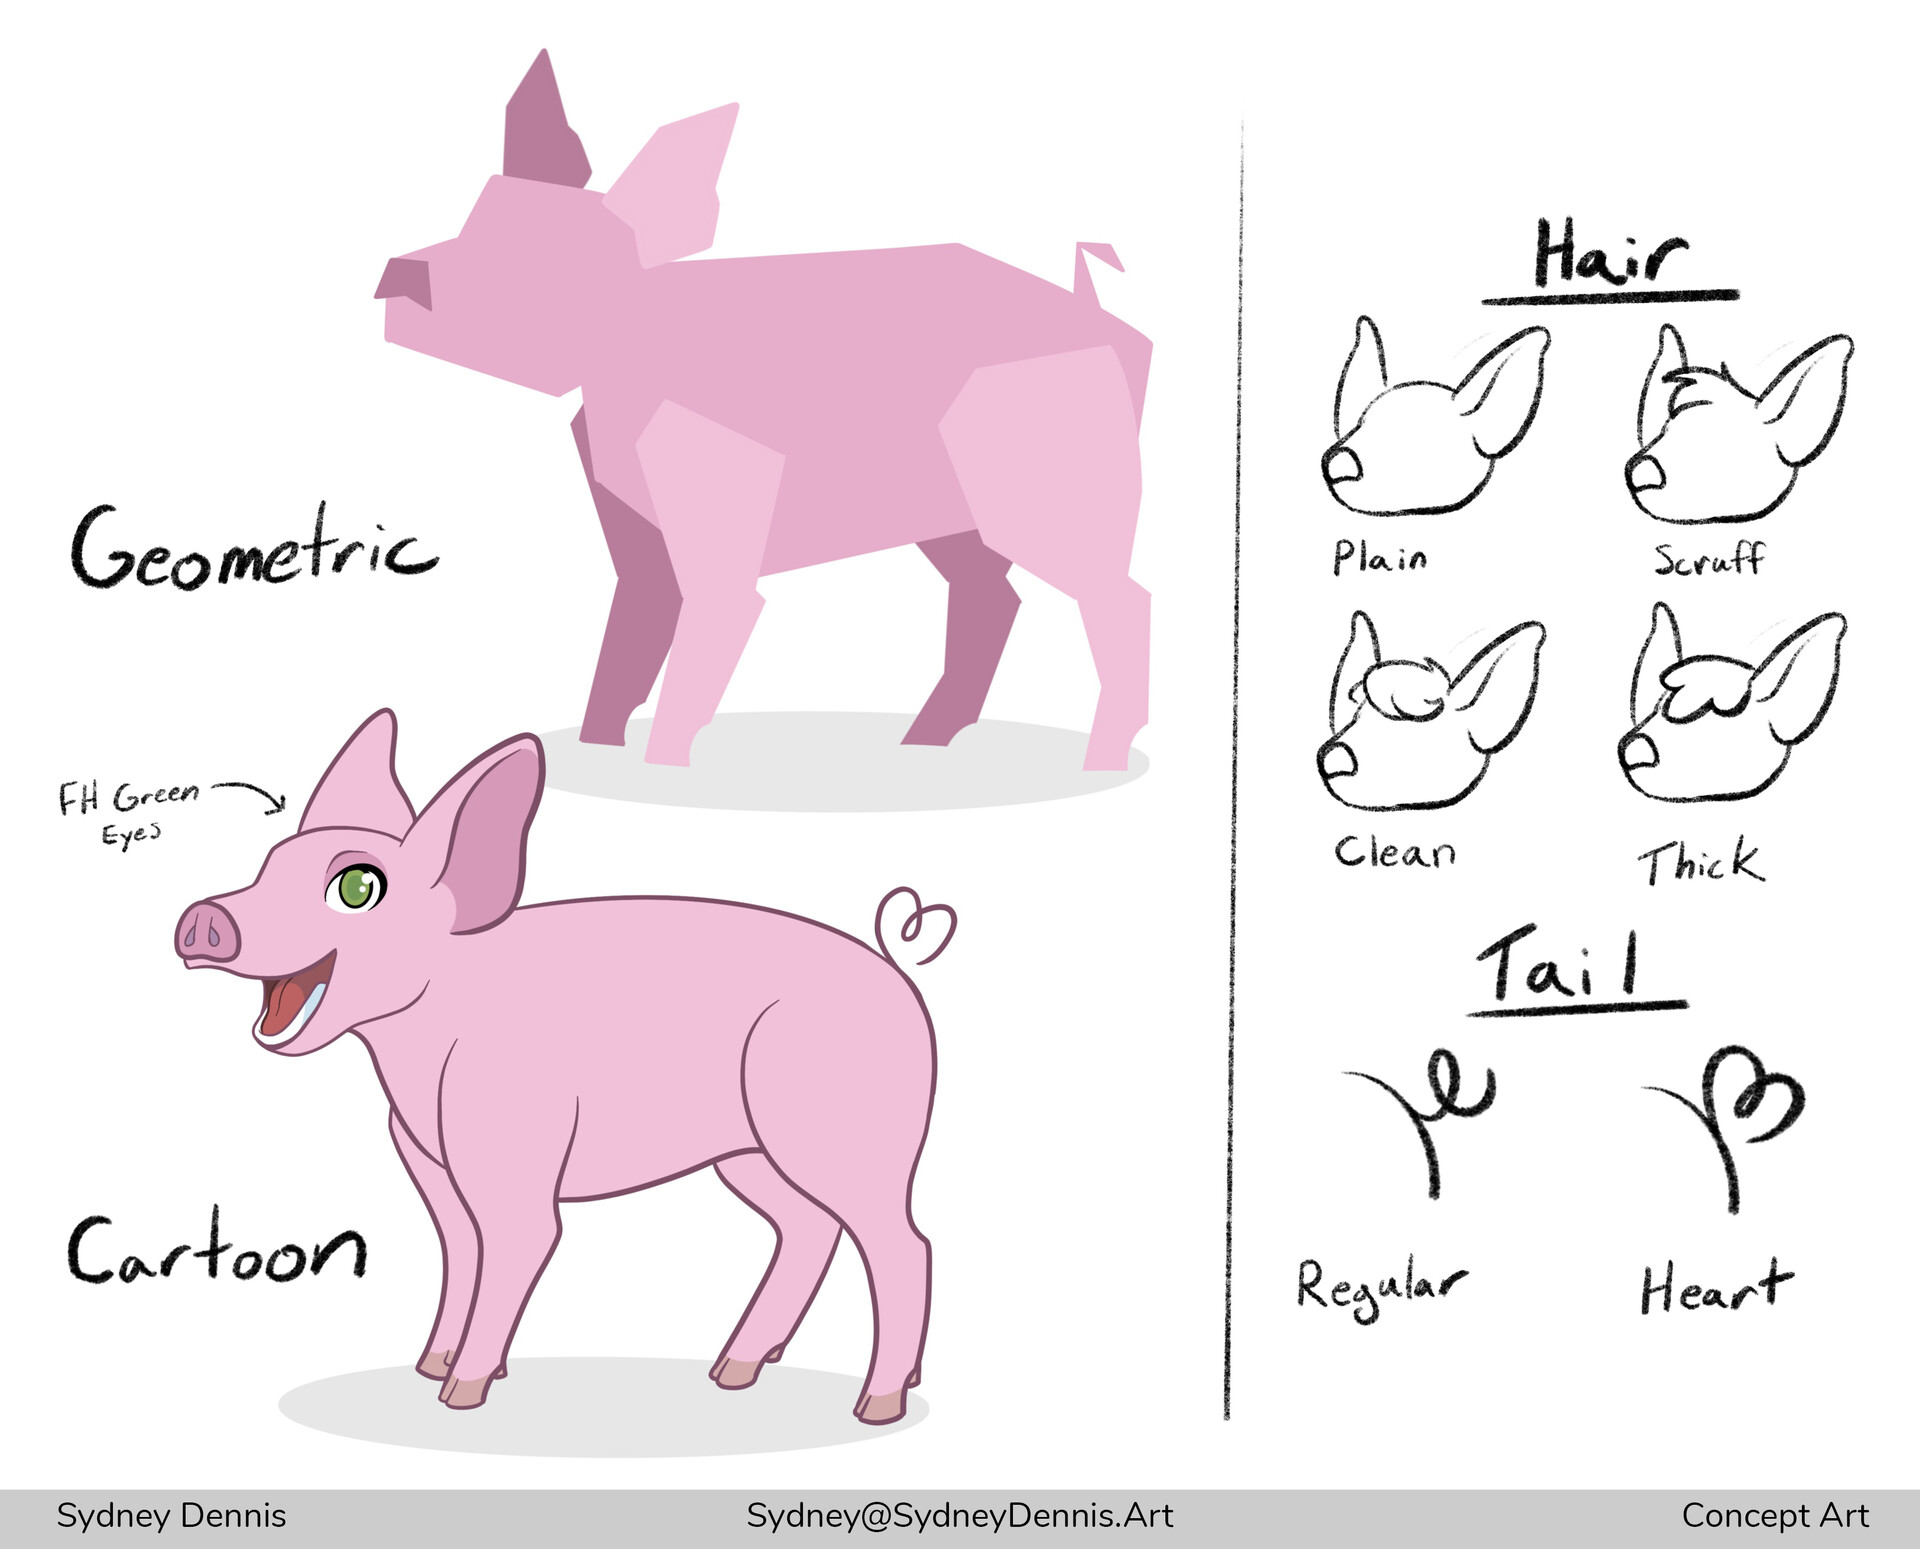 Concept Art. Creating a cartoon rendition of the FH mascot.